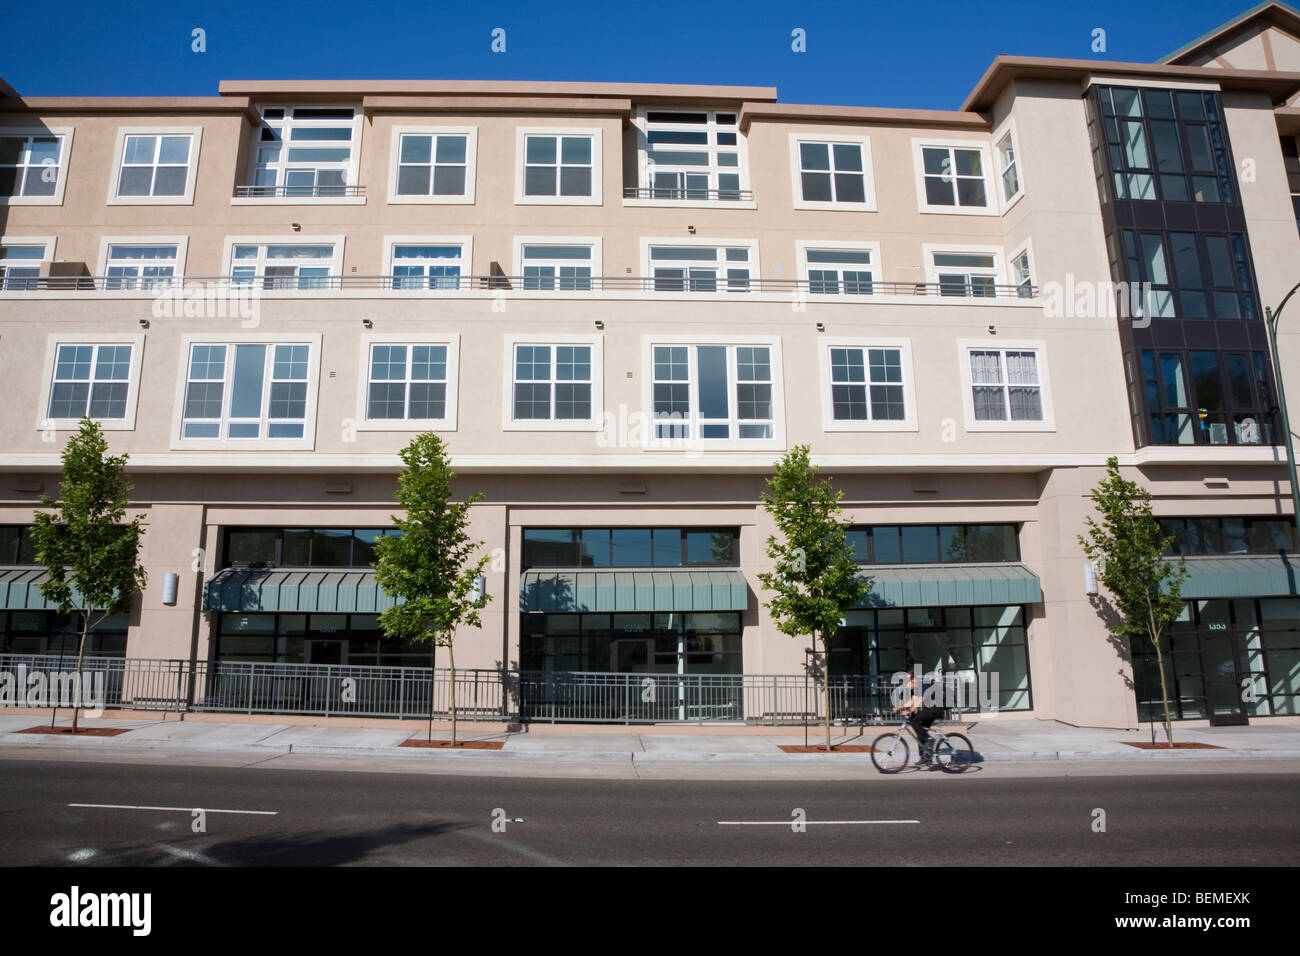 Bicyclist rides in front of mixed use housing development. Residential condominiums and office, retail space. CA Stock Photo